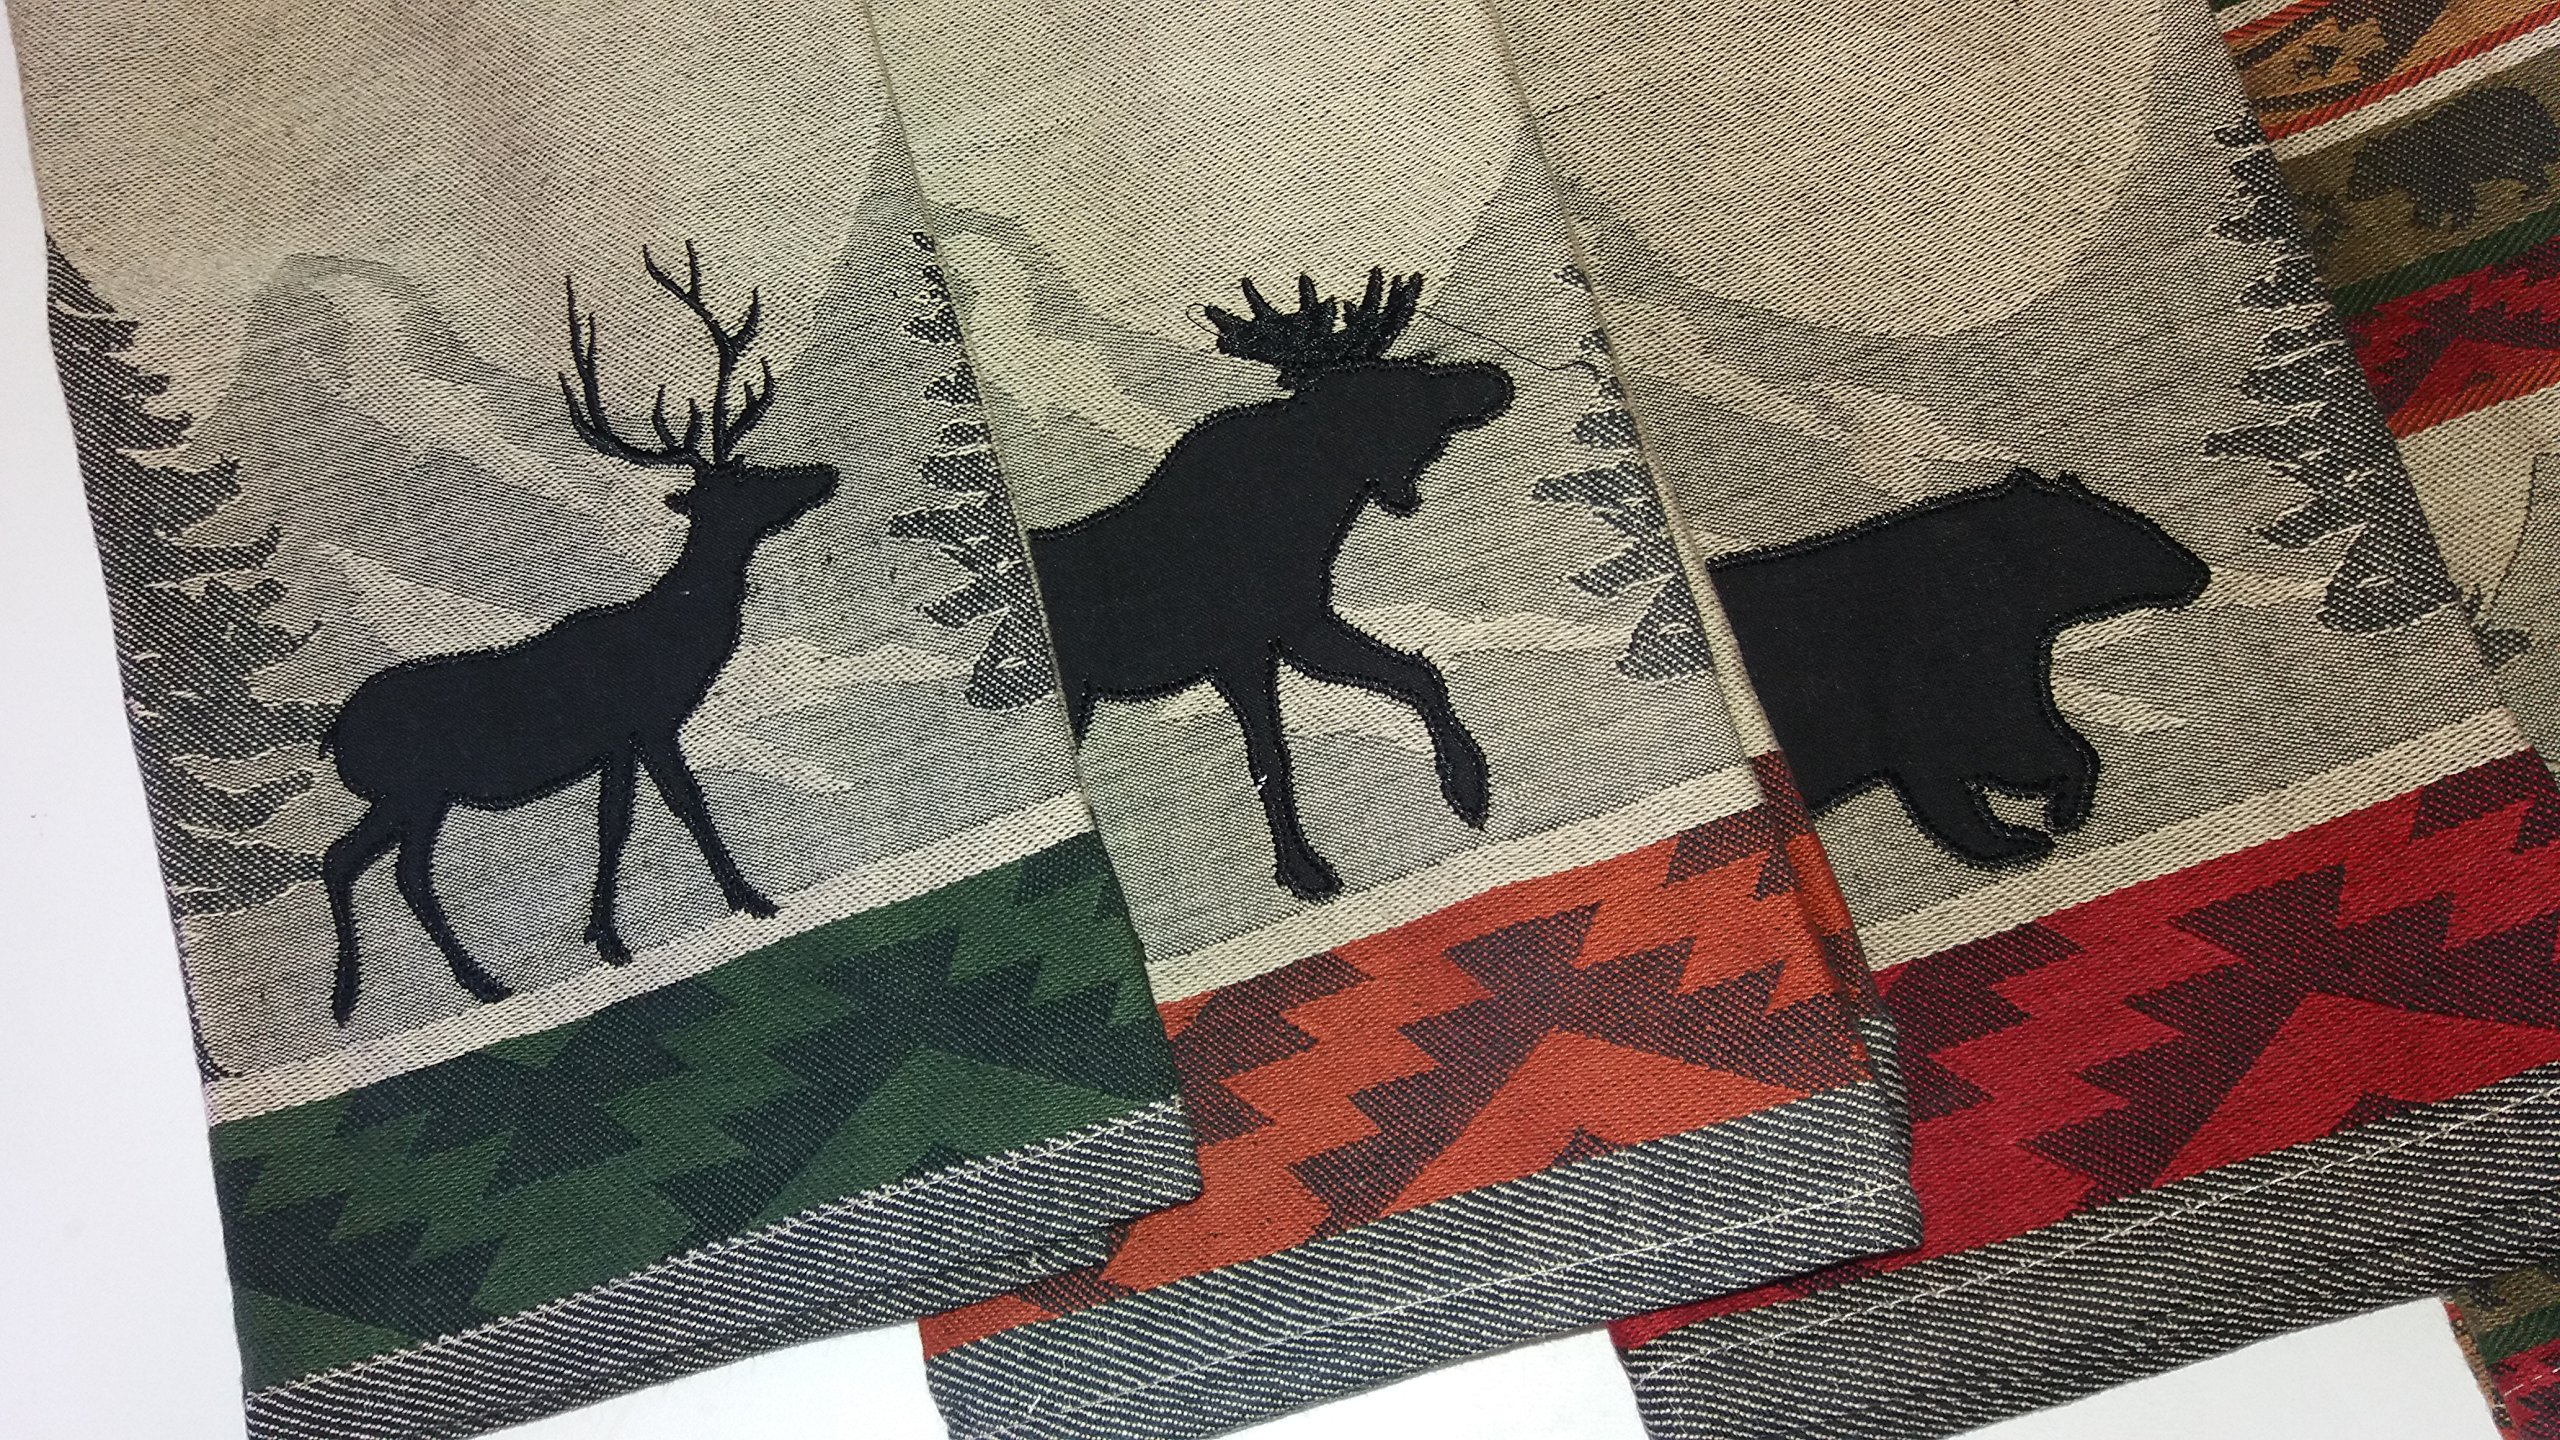 Design Imports 5-Piece Woodsy Jacquard Dishtowel Bundle, 3 Bear, Moose and Deer Appliques and 2 Back Country Stripe Jacquard Towels with Woodland Scenes